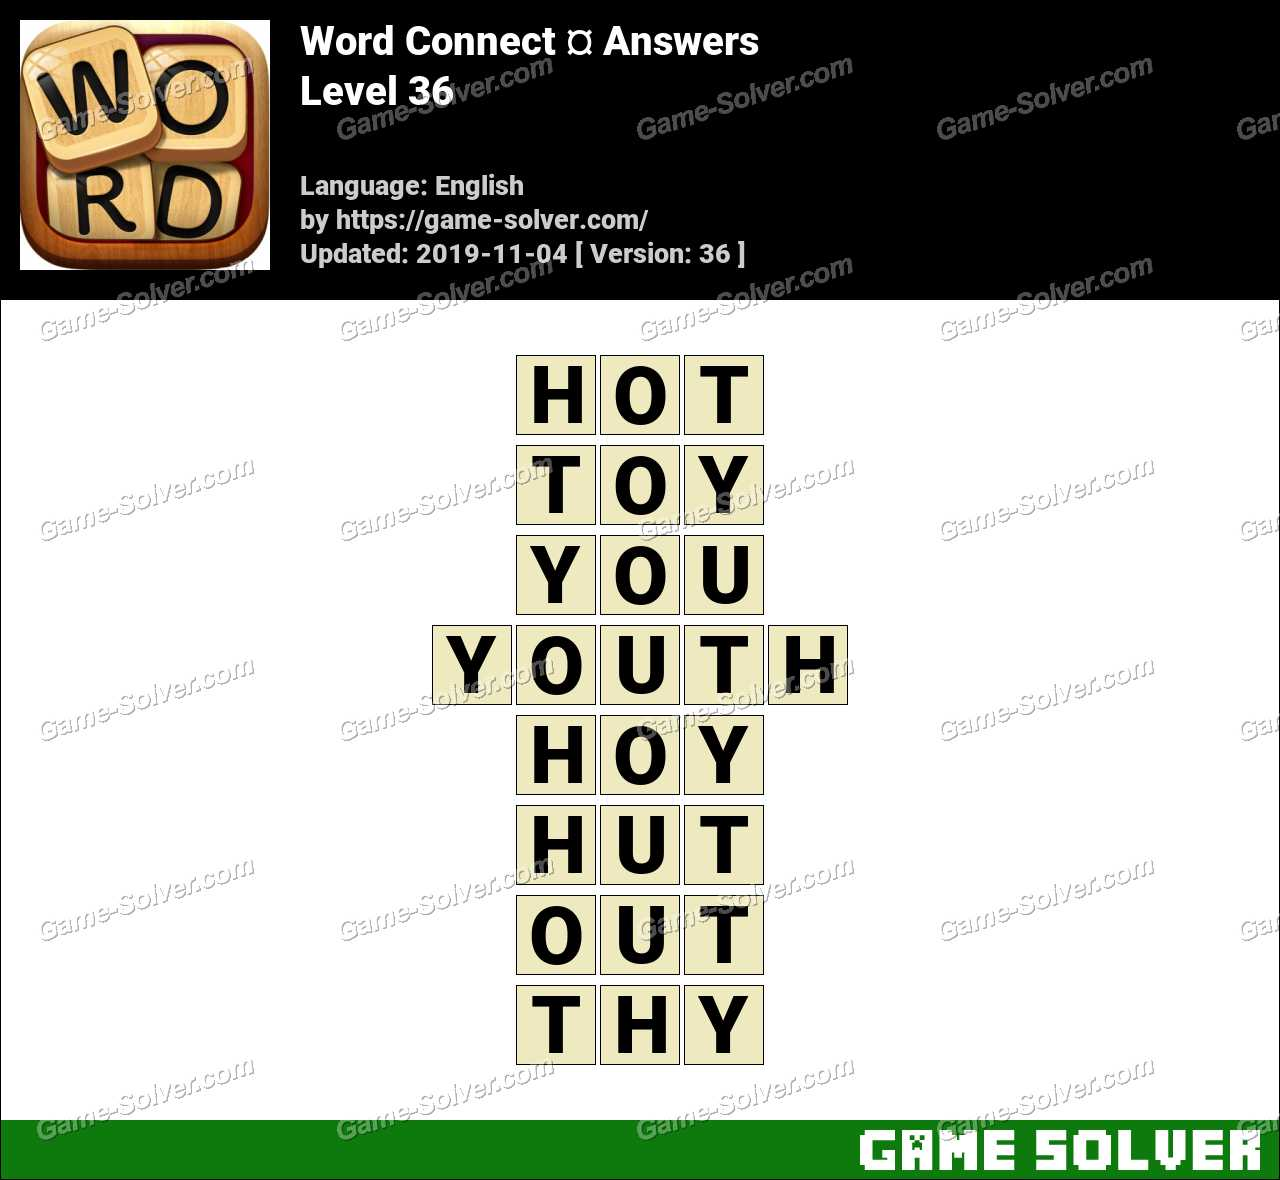 Word Connect Level 36 Answers